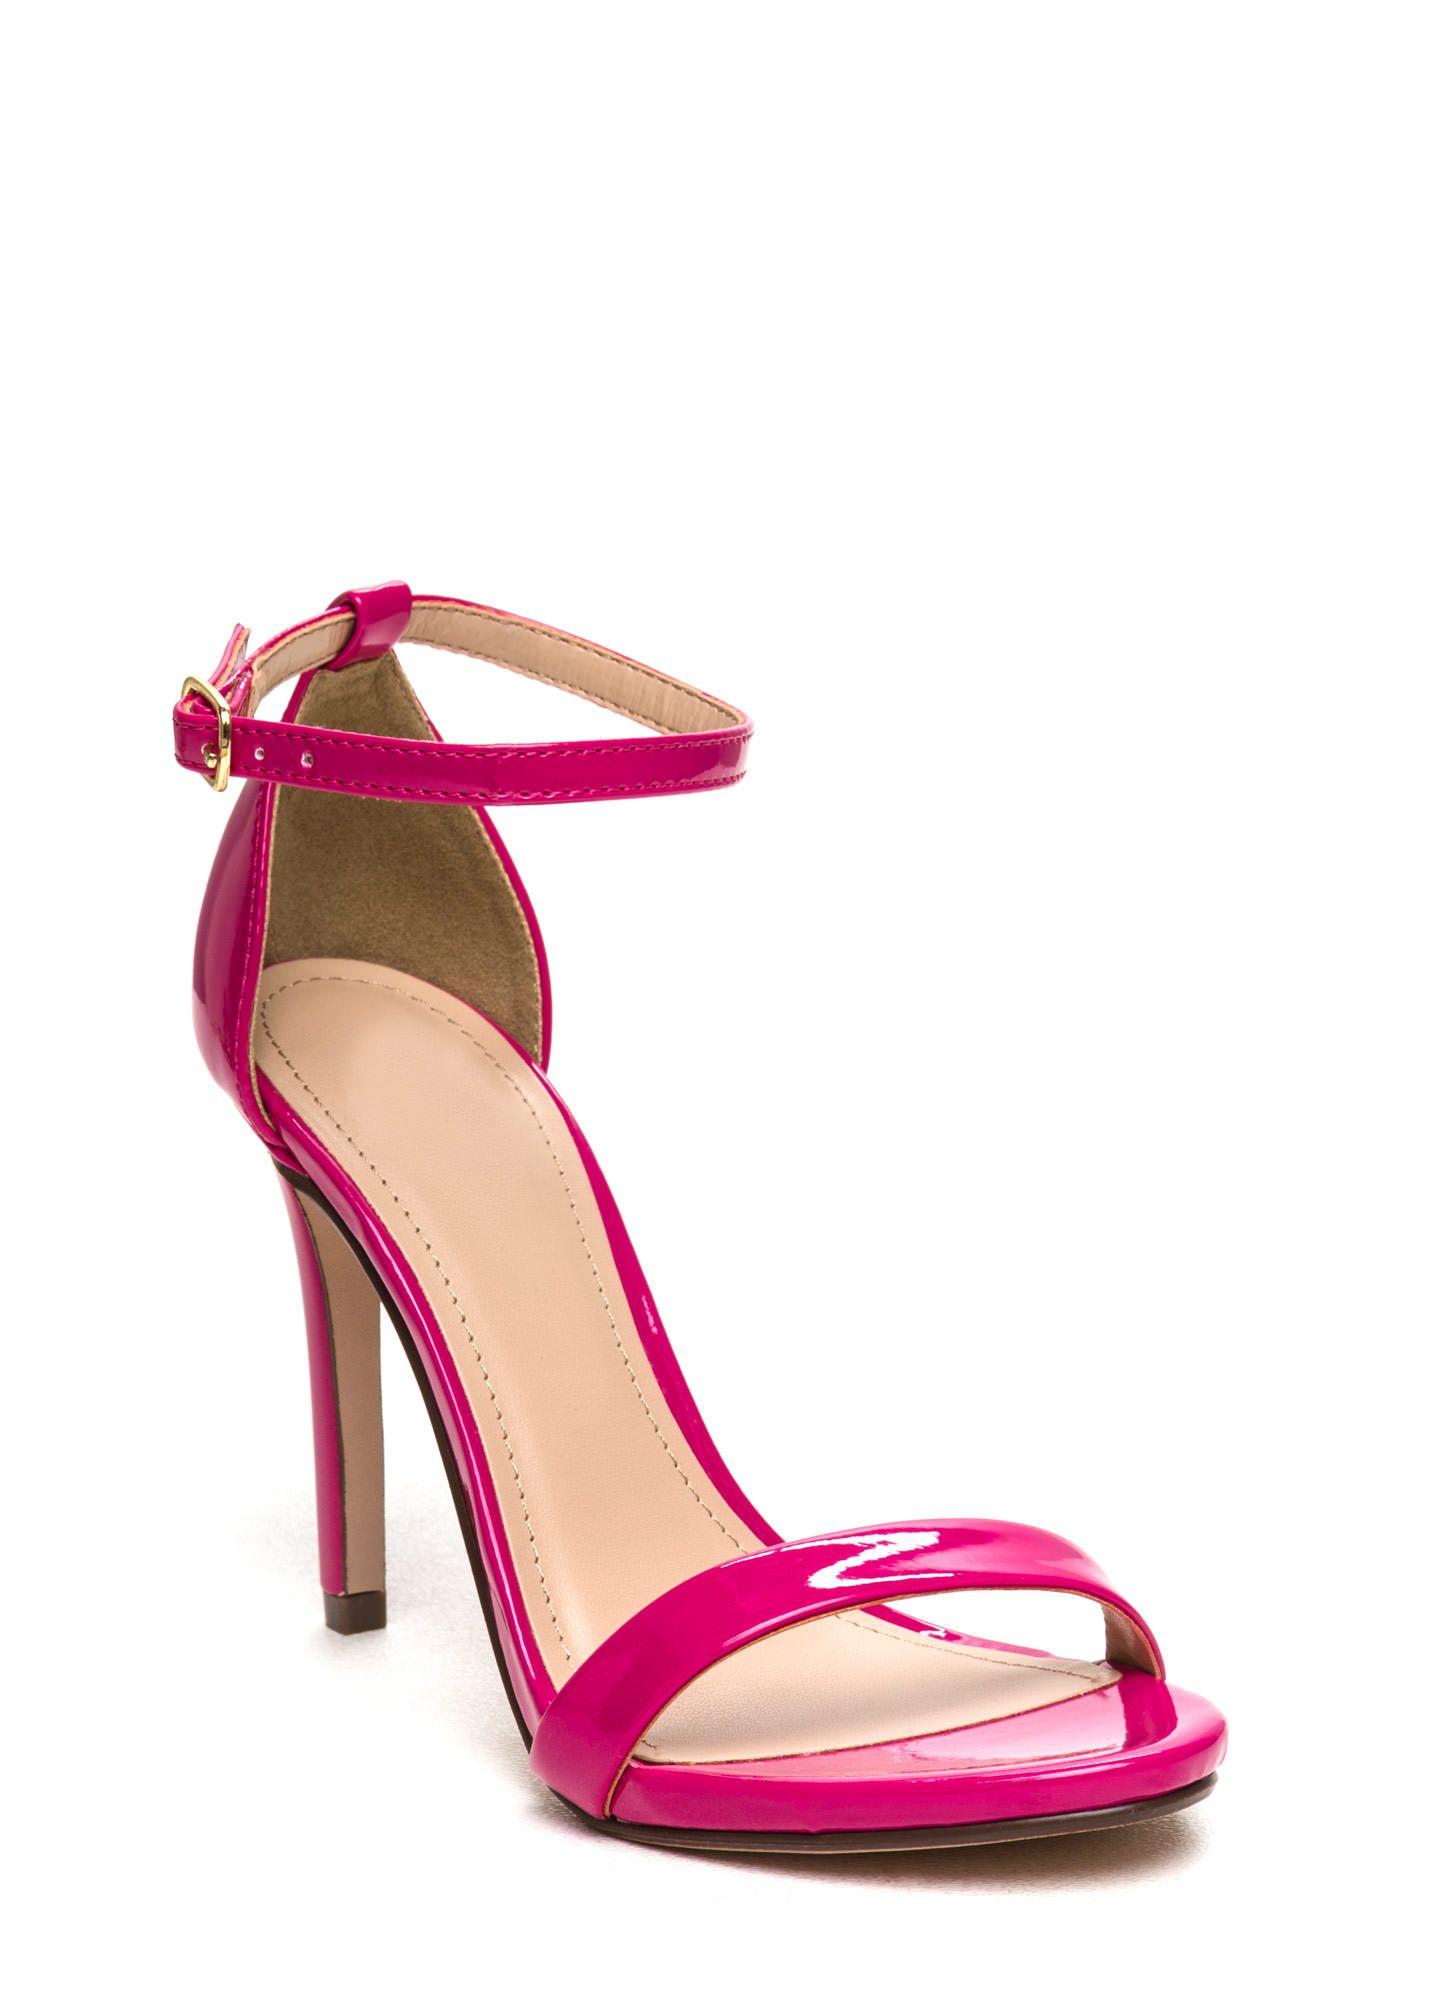 Hot Pink Heels With Ankle Strap - Red Heels Vip